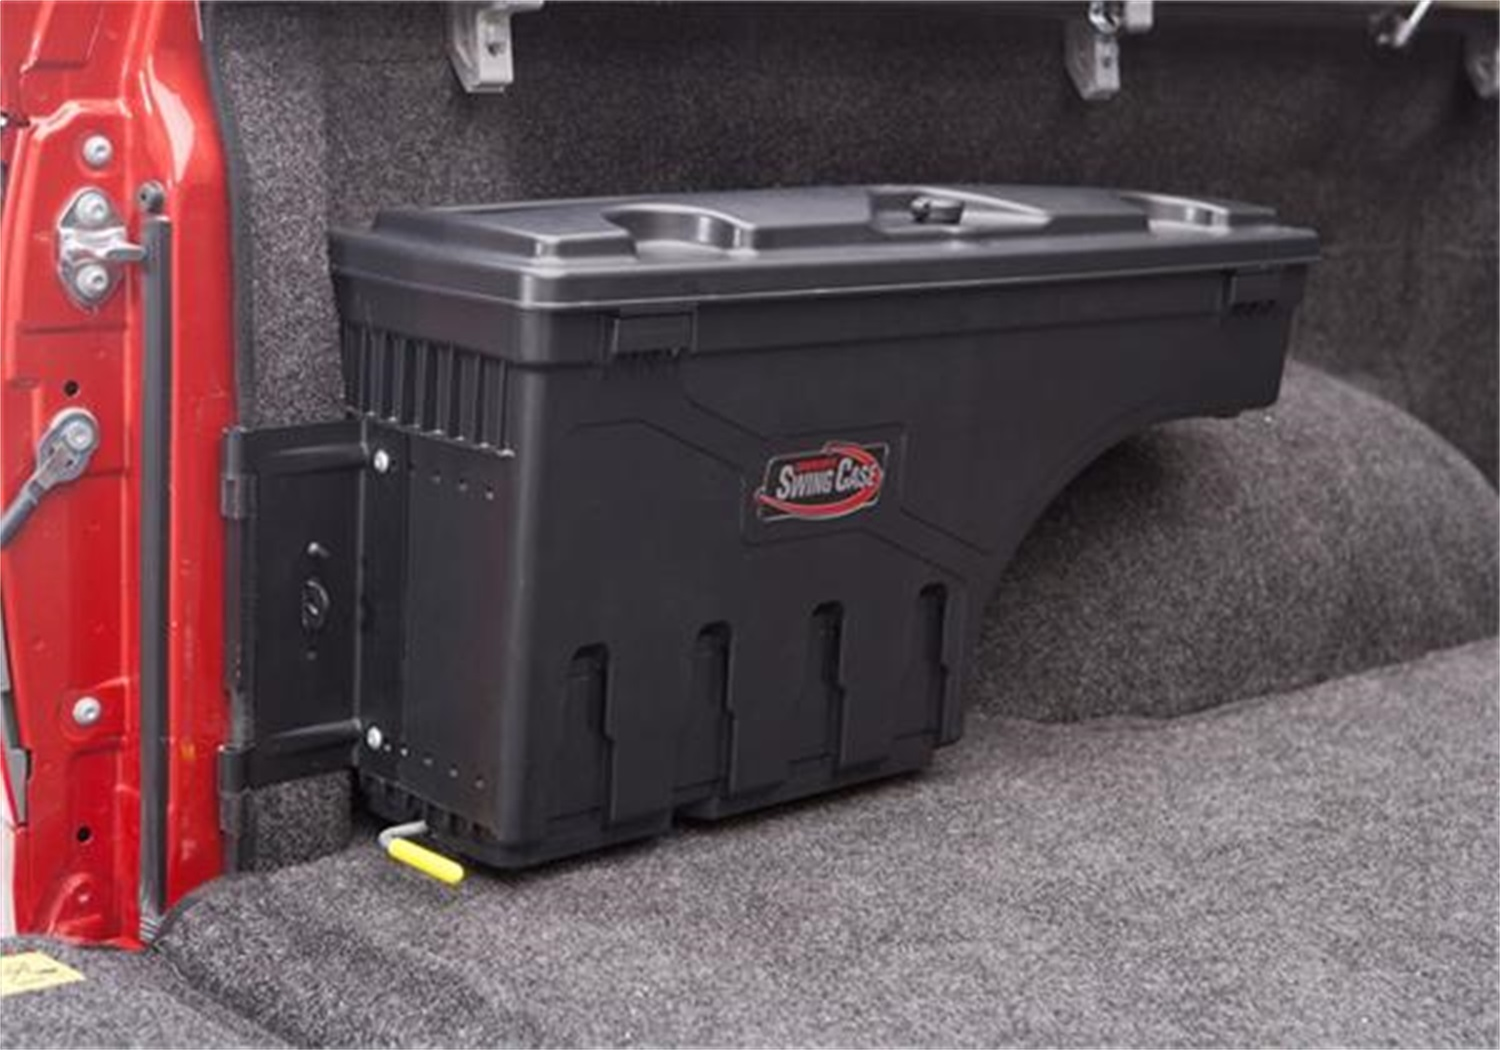 New Undercover Tonneau Undercover Swing Case Storage Box